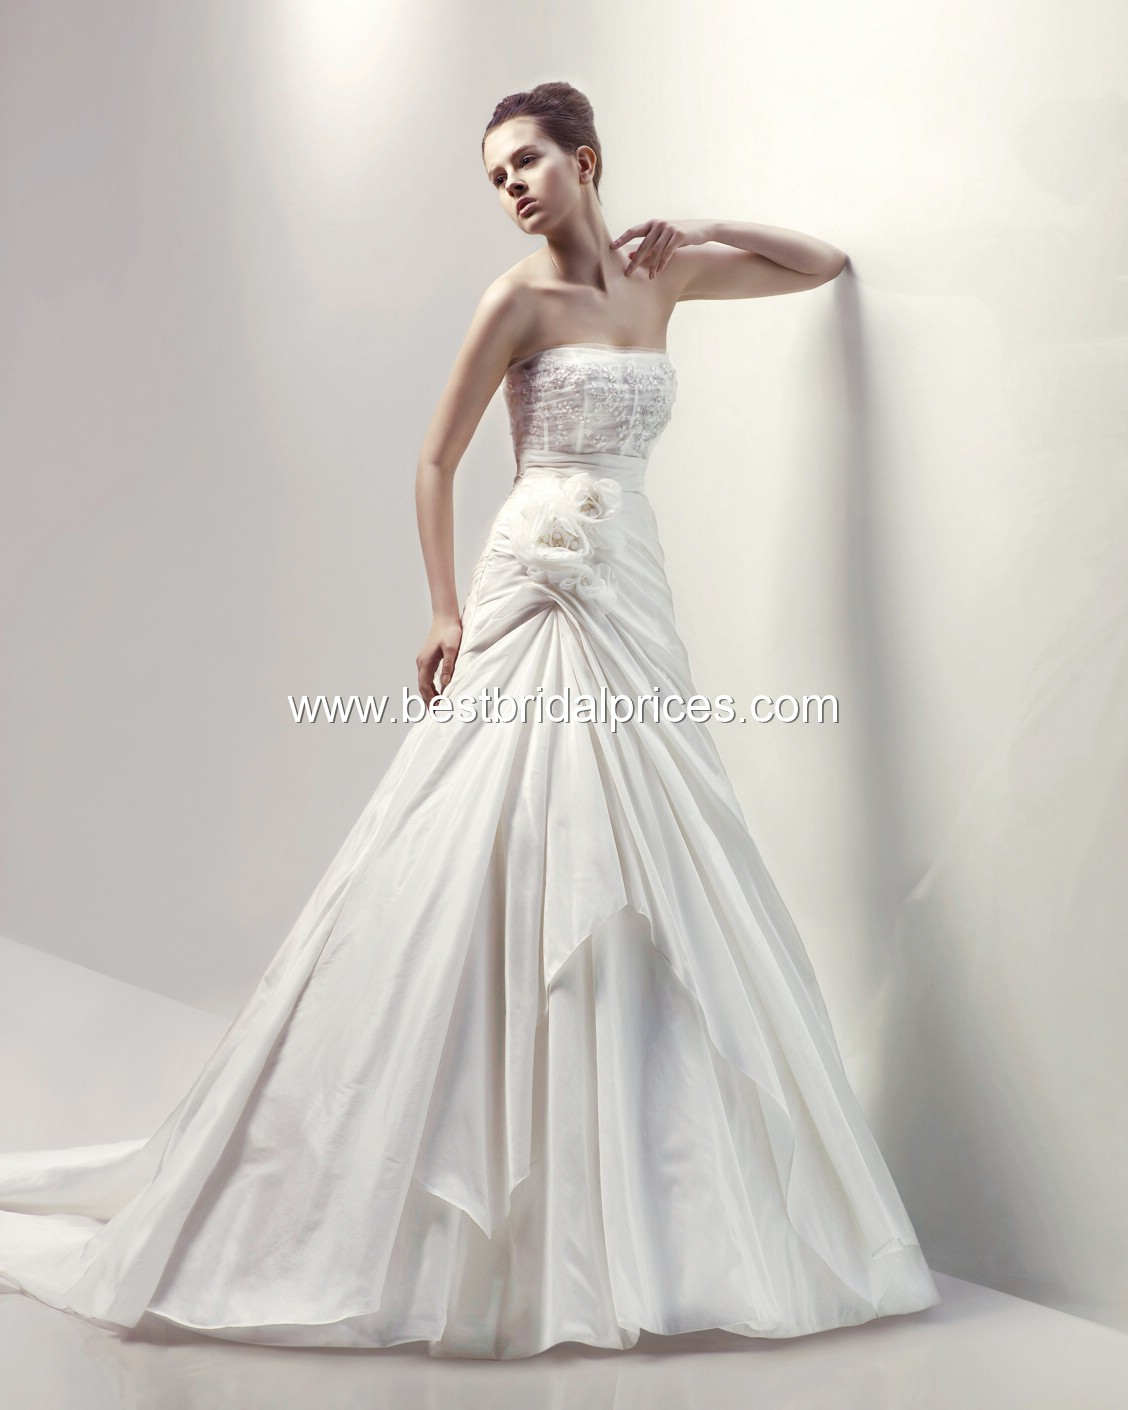 Wedding Dresses In Chicago Il. bridal gowns in chicago illinois ...